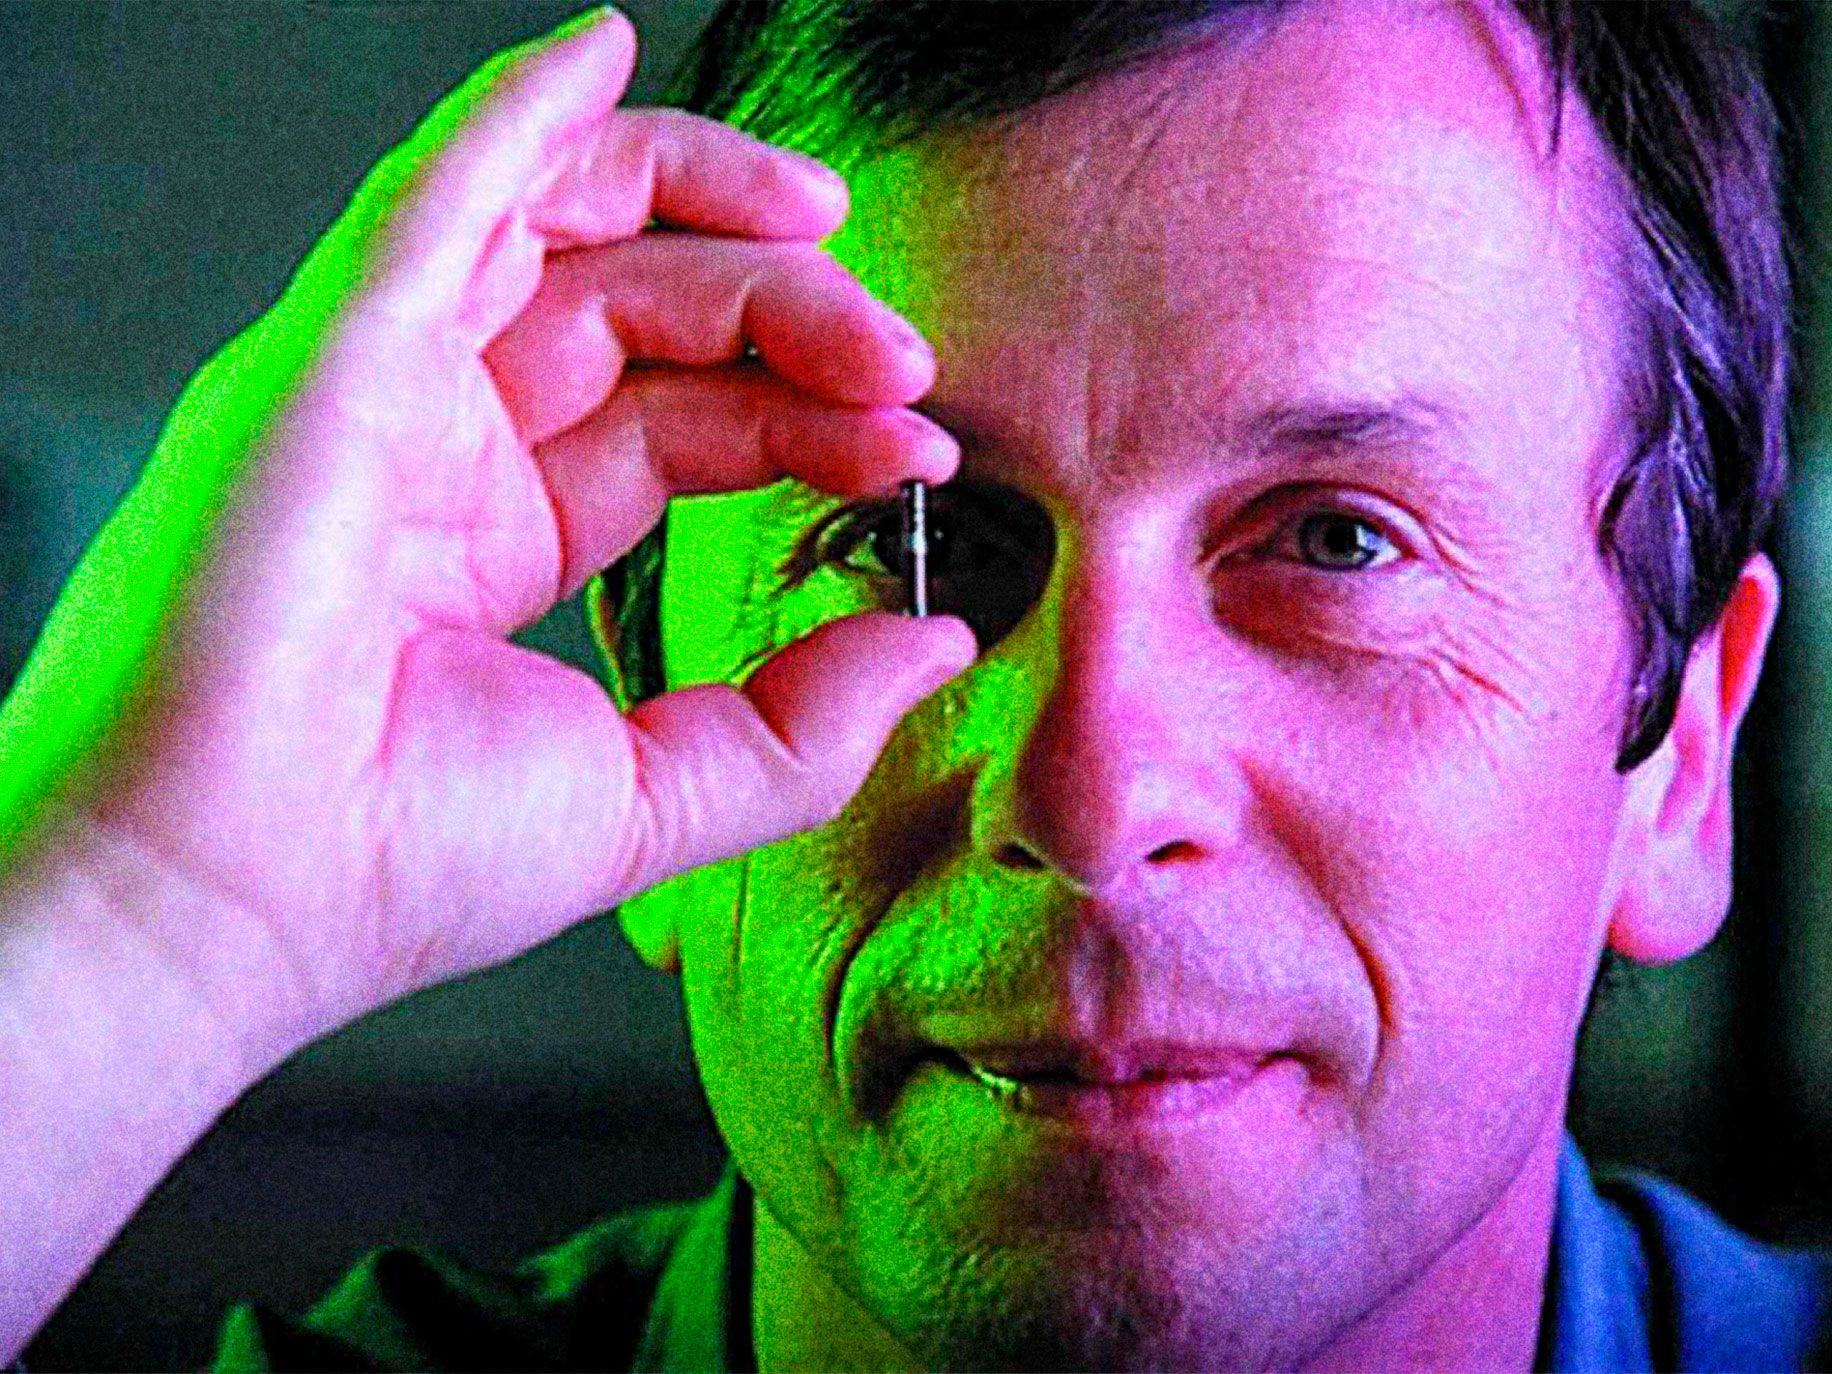 Kevin Warwick, a British engineer at Coventry University, holds a small transponder that can be implanted in a human. Warwick has a similar chip in his arm that allows him to control appliances in his office.